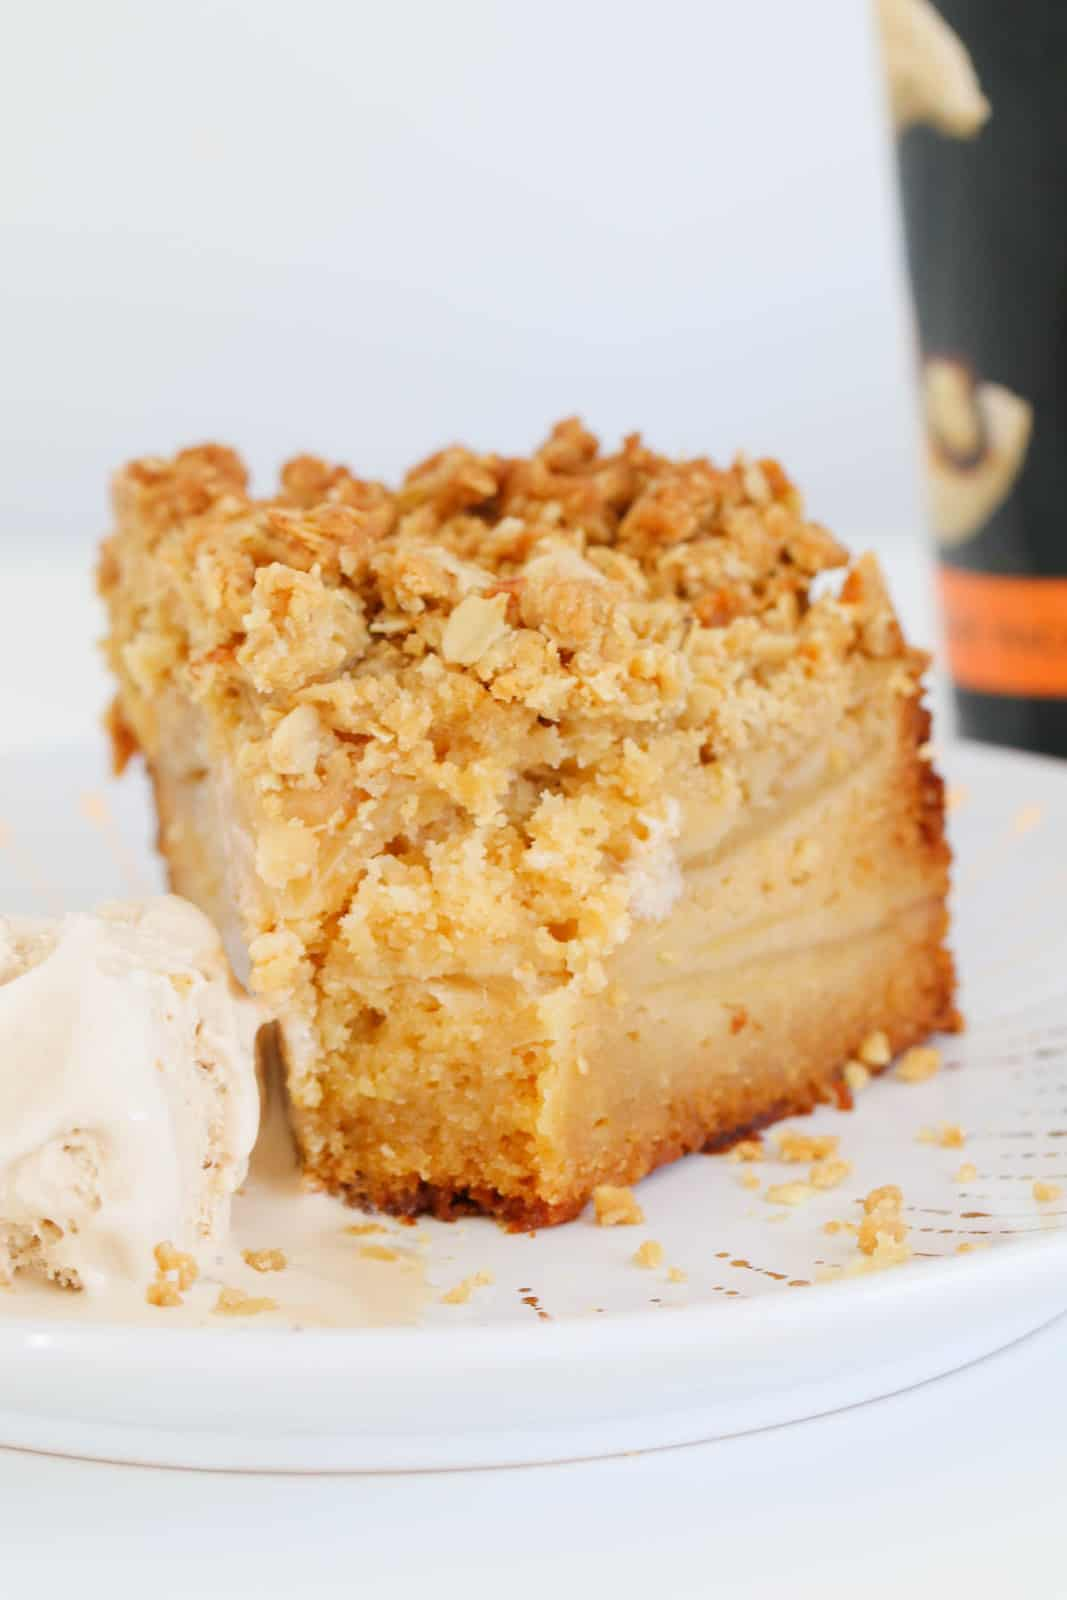 A serve of cake with a thick layer of crumble on top, and filled with layers of sliced apple.